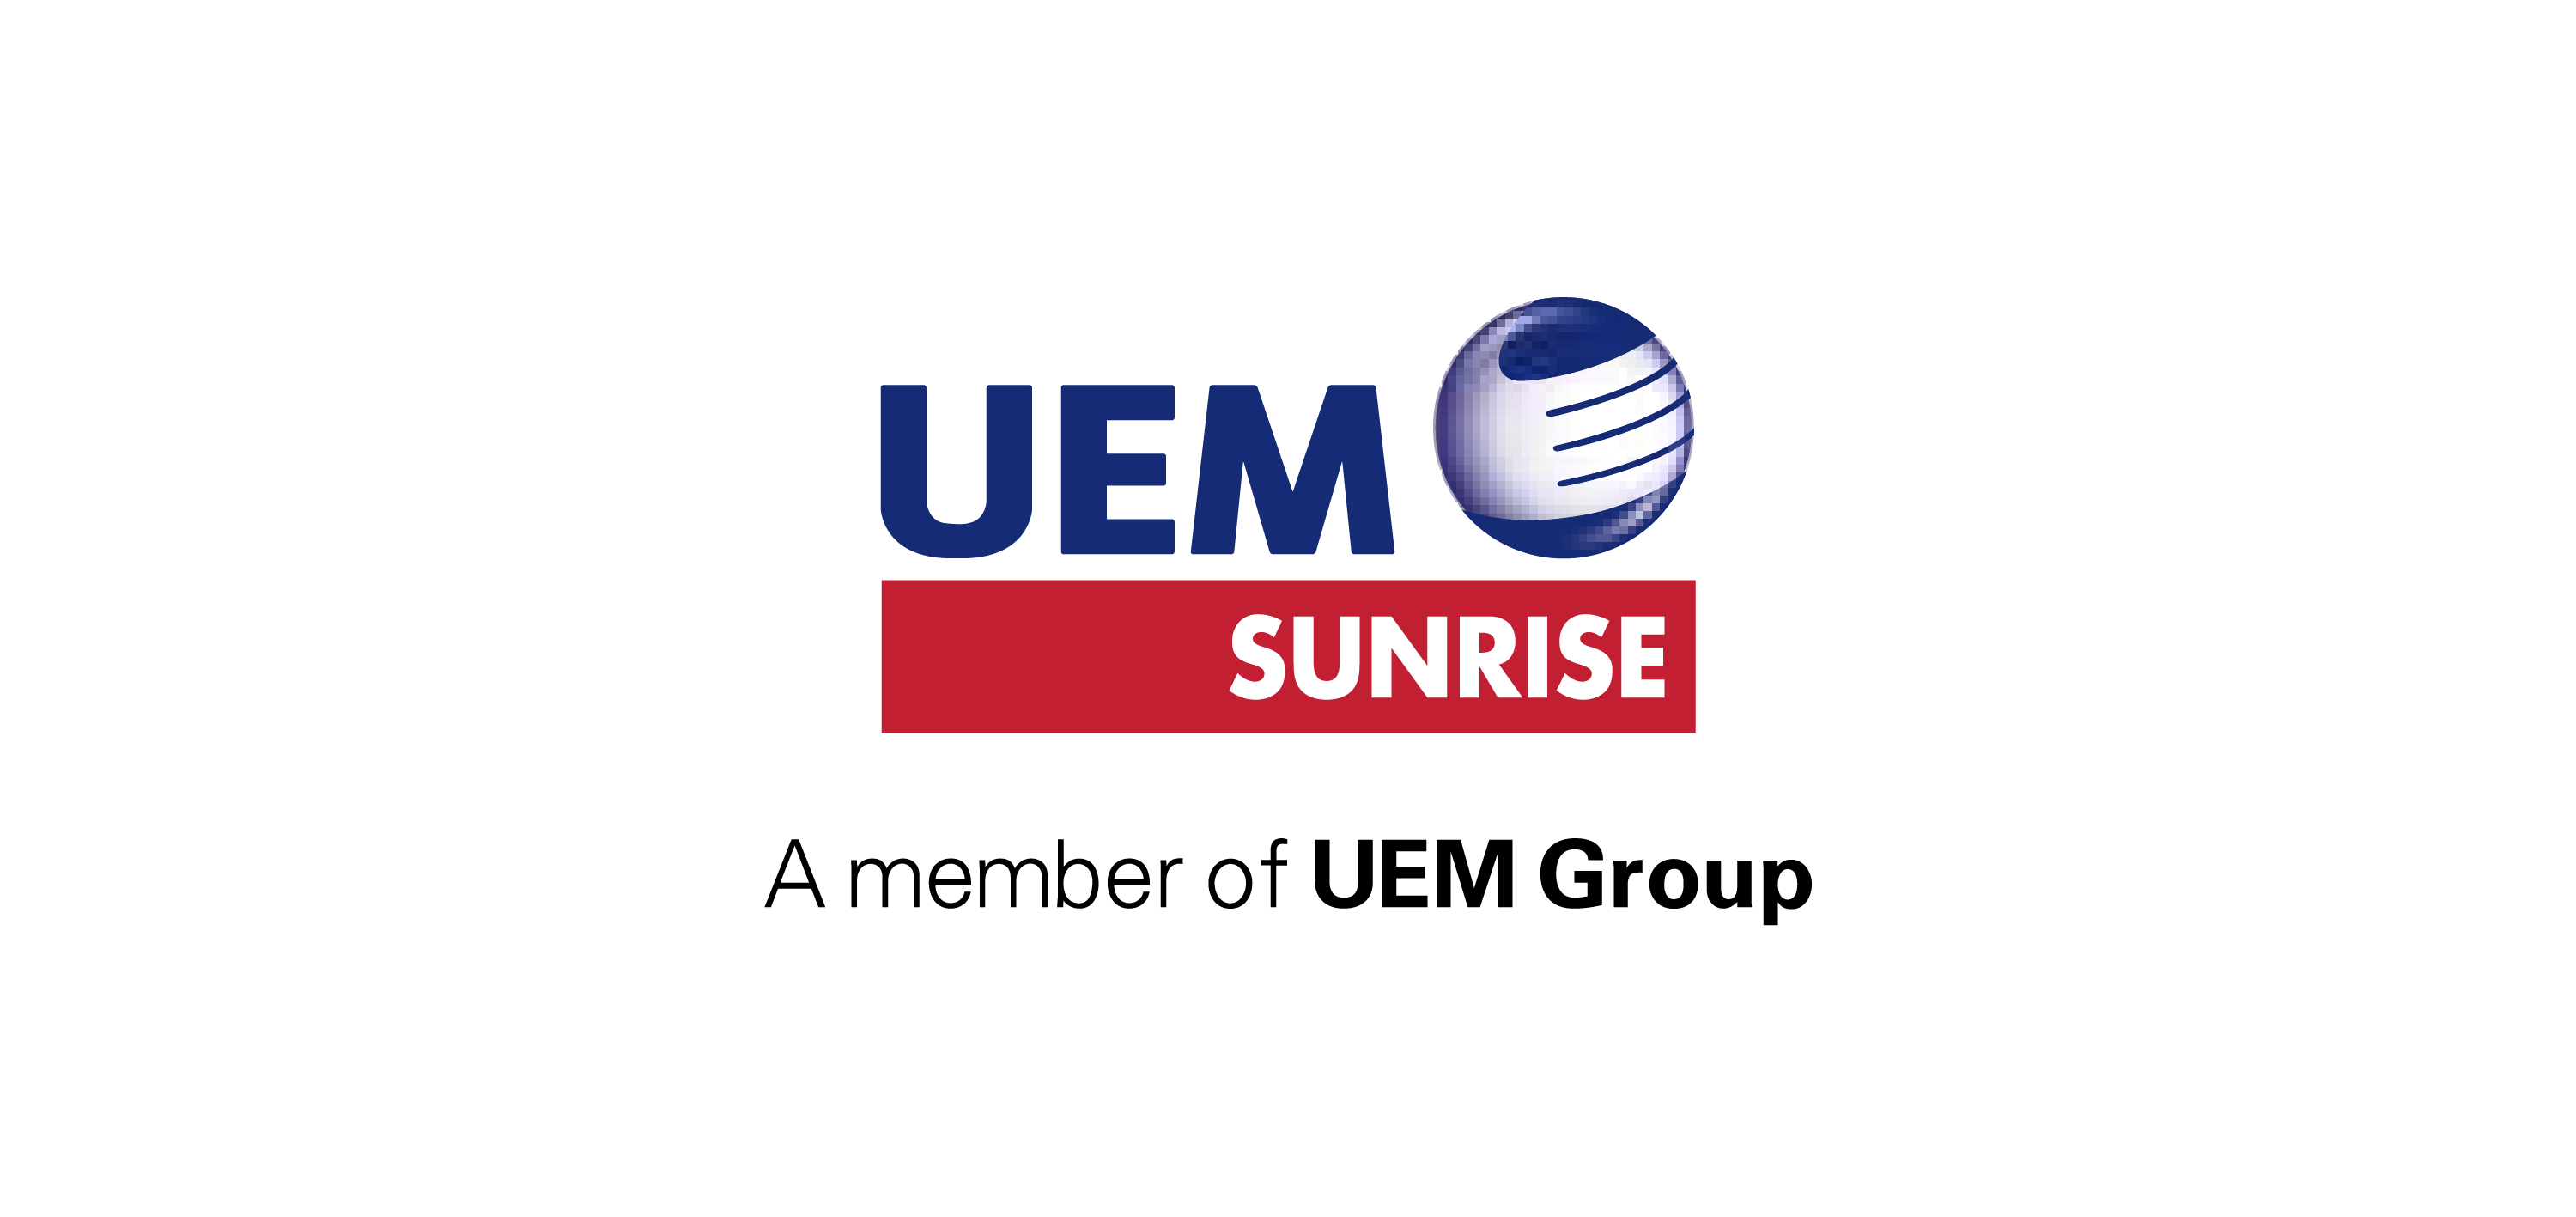 uem sunrise logo vector